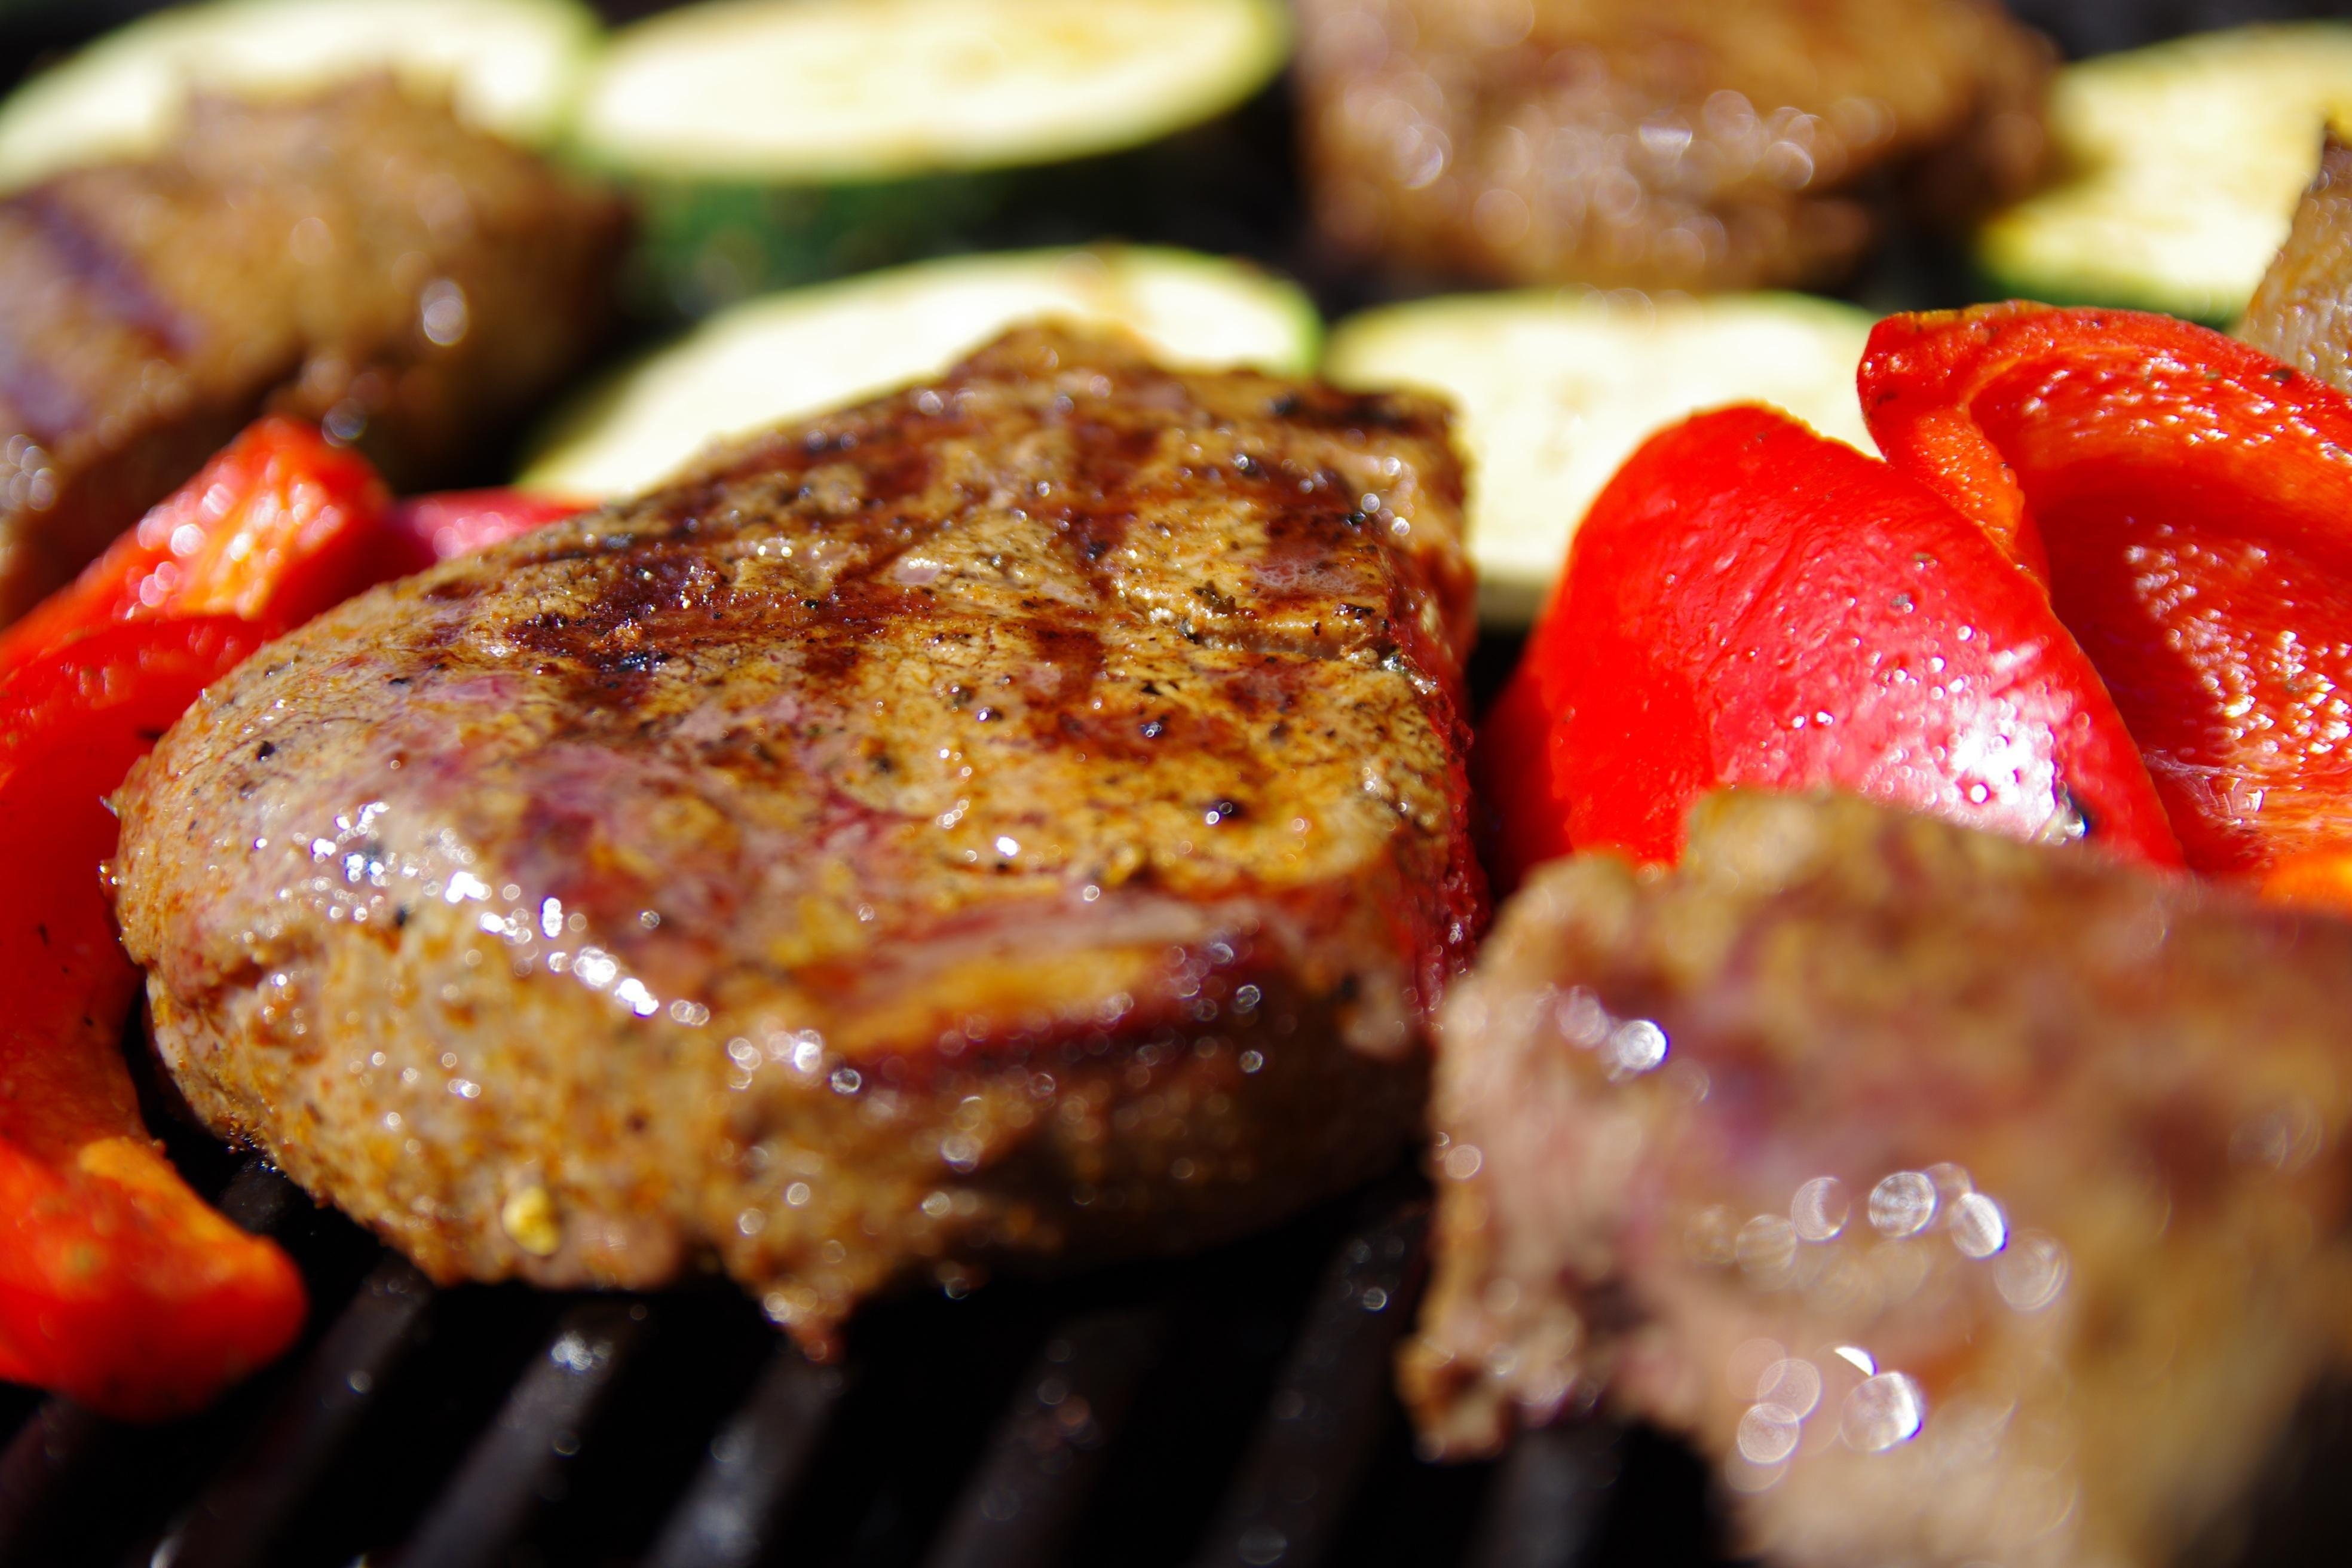 High Protein Foods Make People With Type 2 Diabetes Manage Blood Sugar